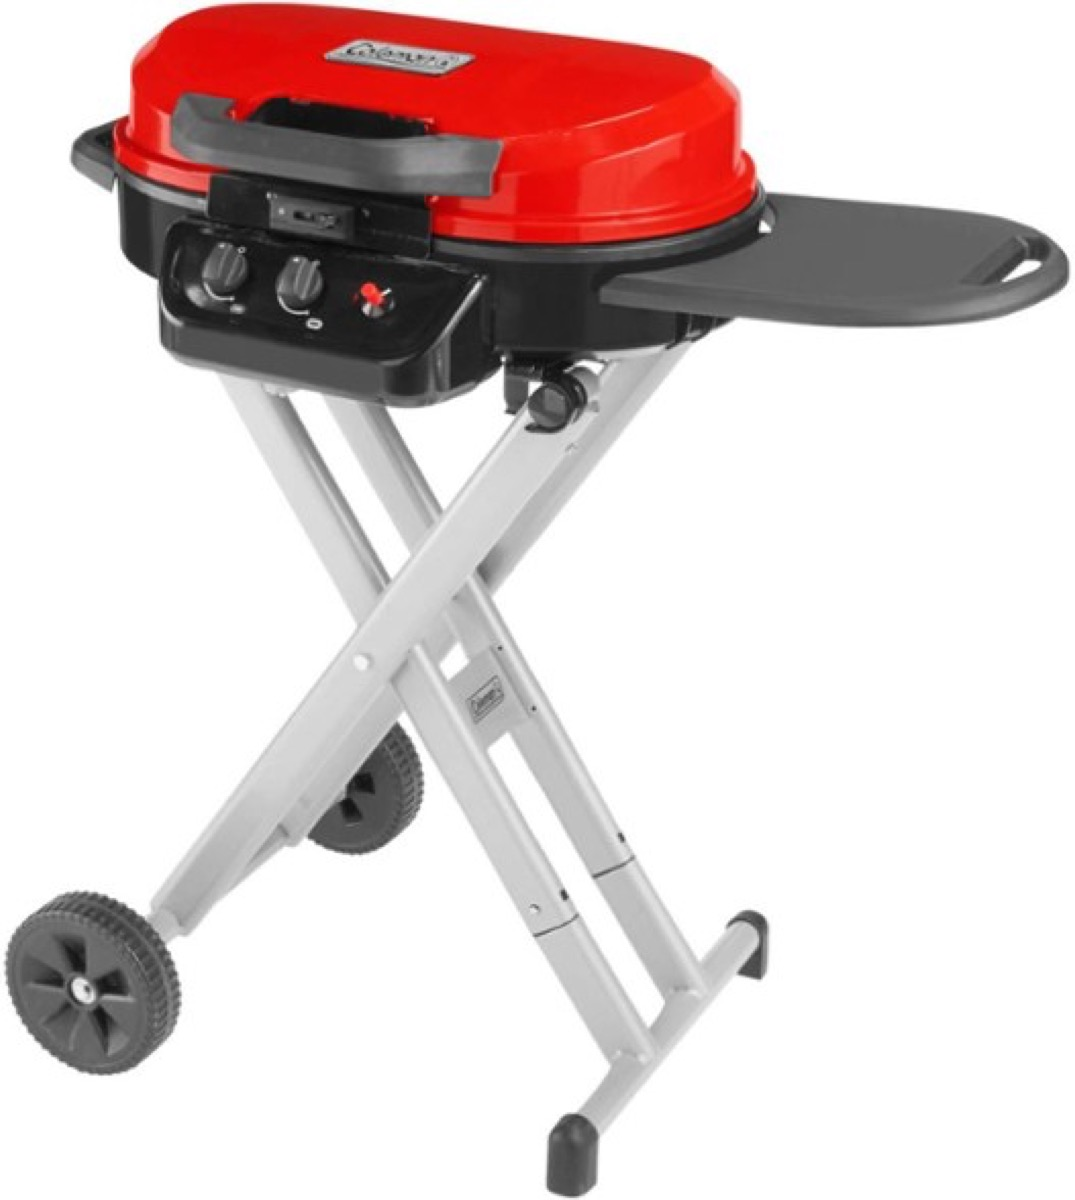 coleman portable grill in red, best boyfriend gifts